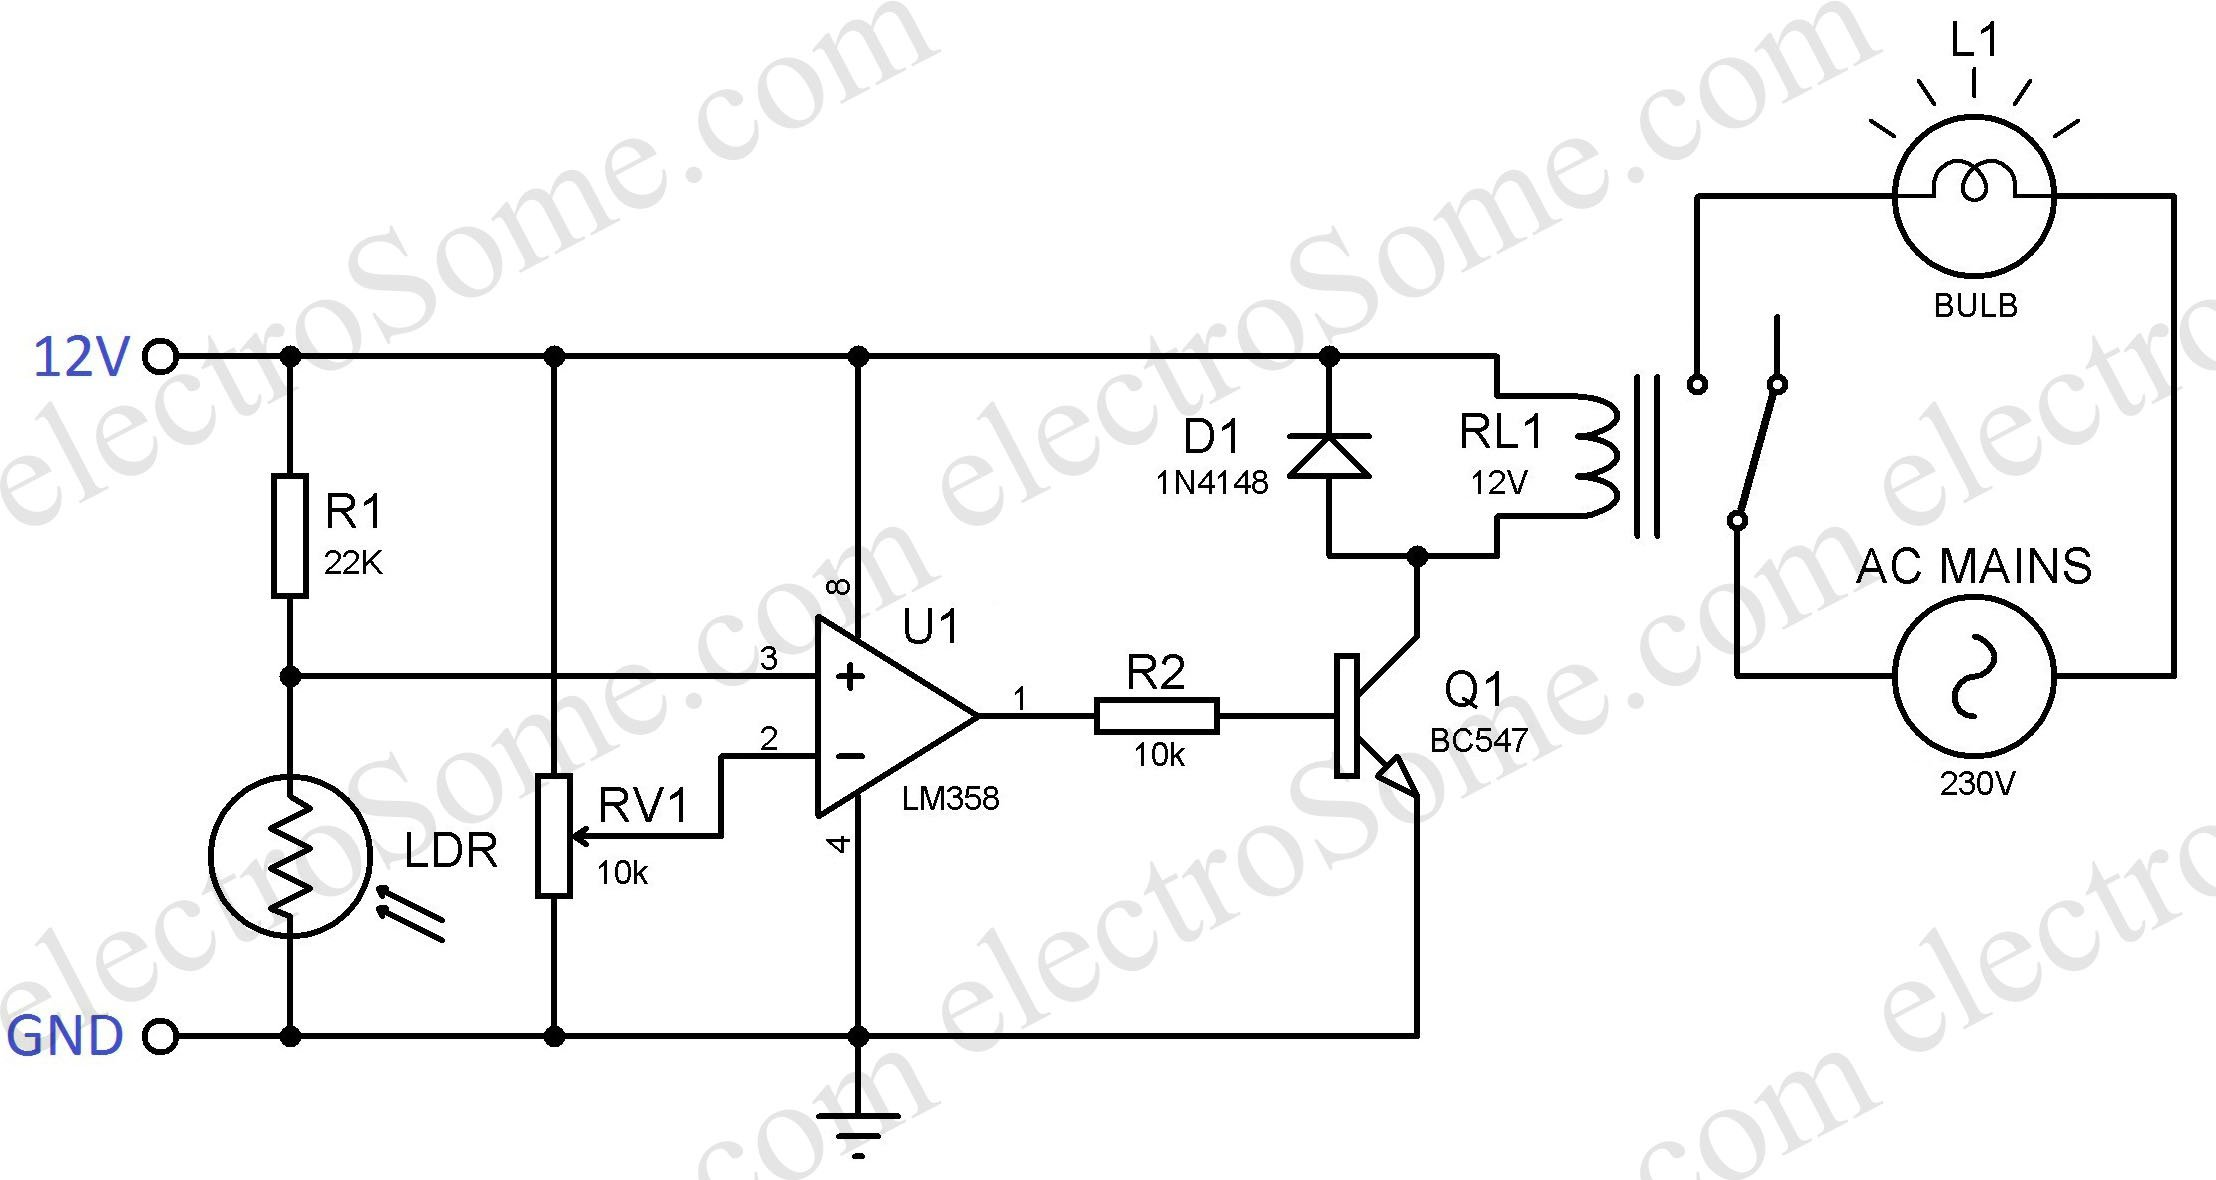 Automatic Night Lamp Using Ldr Power Buzzer Circuit Diagram